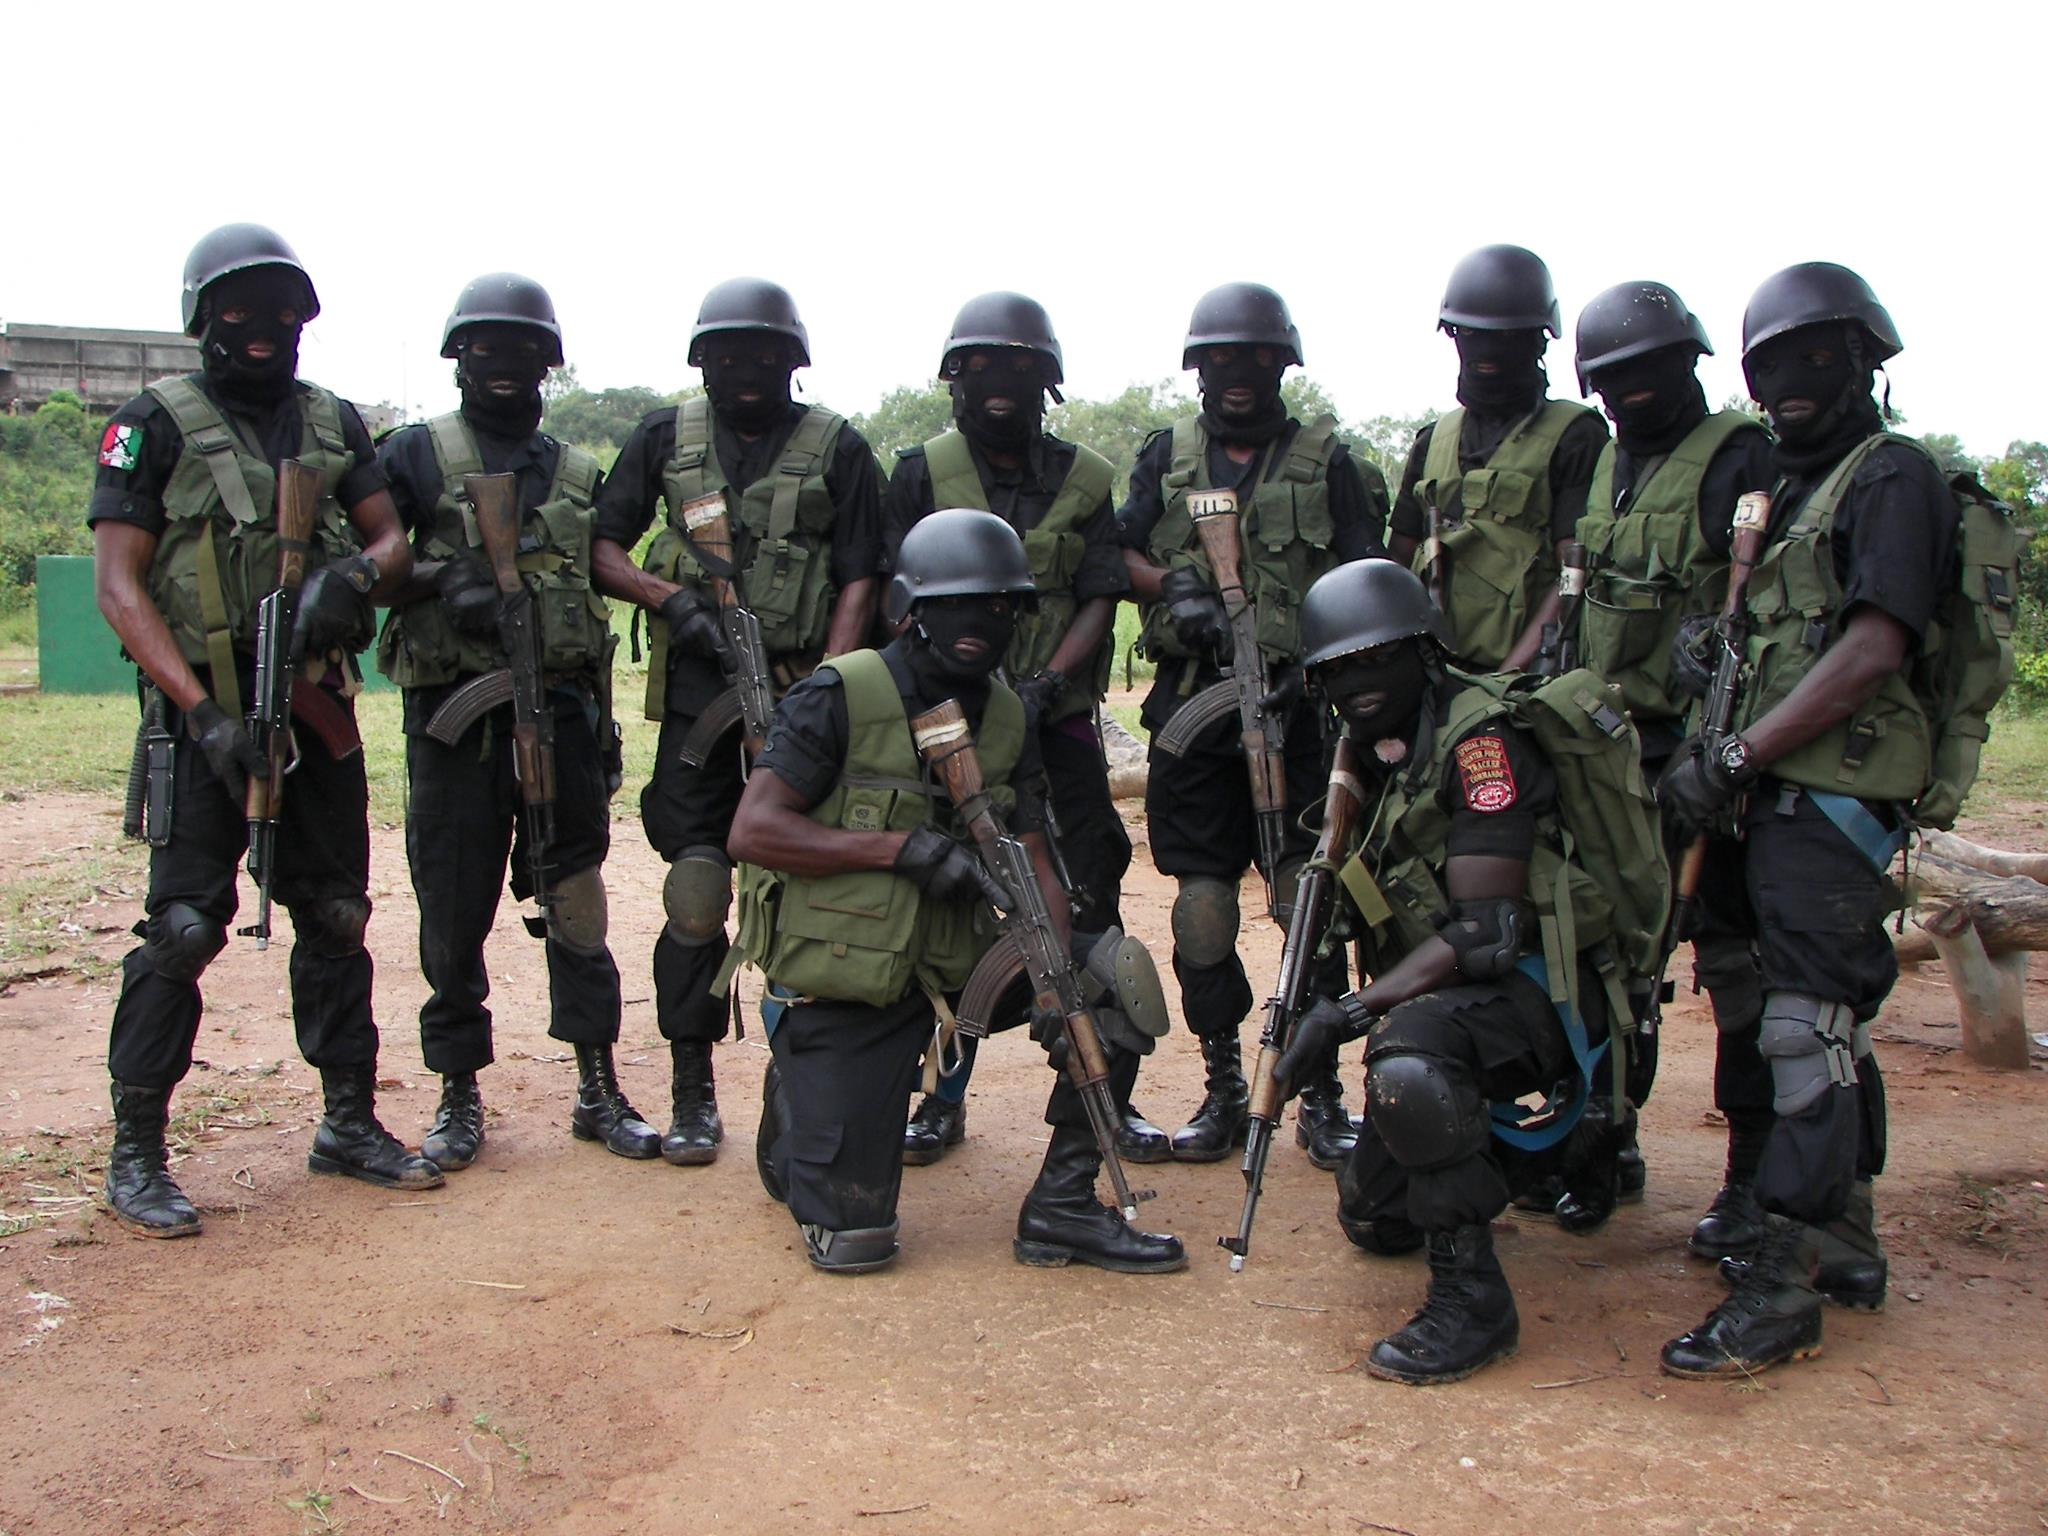 NIGERIAN ARMY SPECIAL FORCES RAID UNCOVERS WAREHOUSE WITH ...  Nigerian Army Special Forces